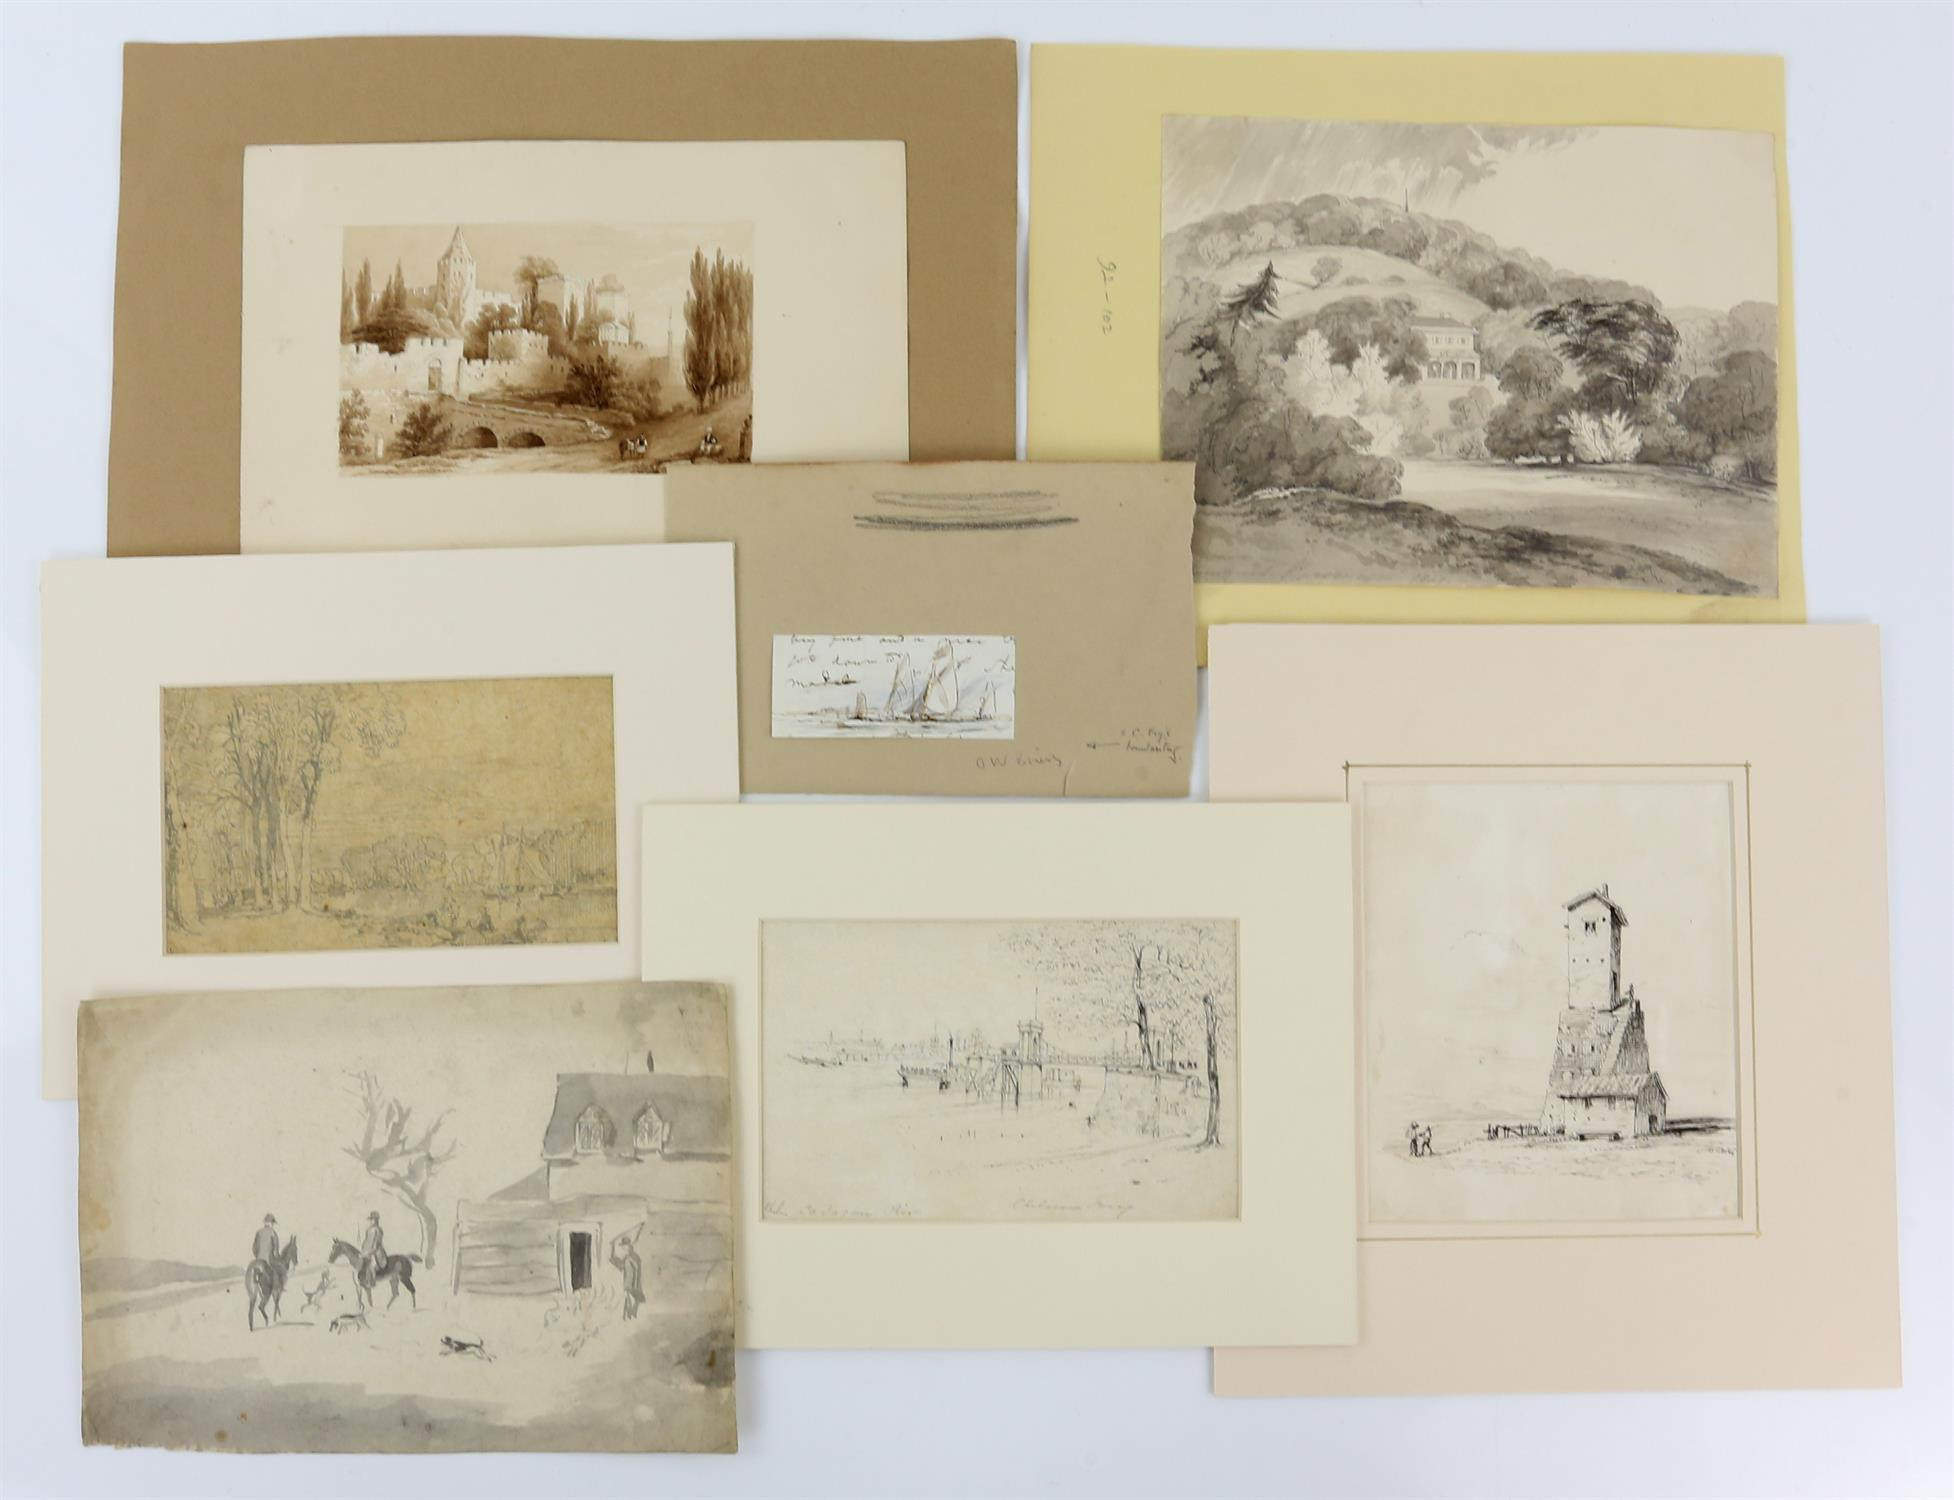 19th century scene with a castle and figures before the moat, sepia wash, 9.5cm x 15.